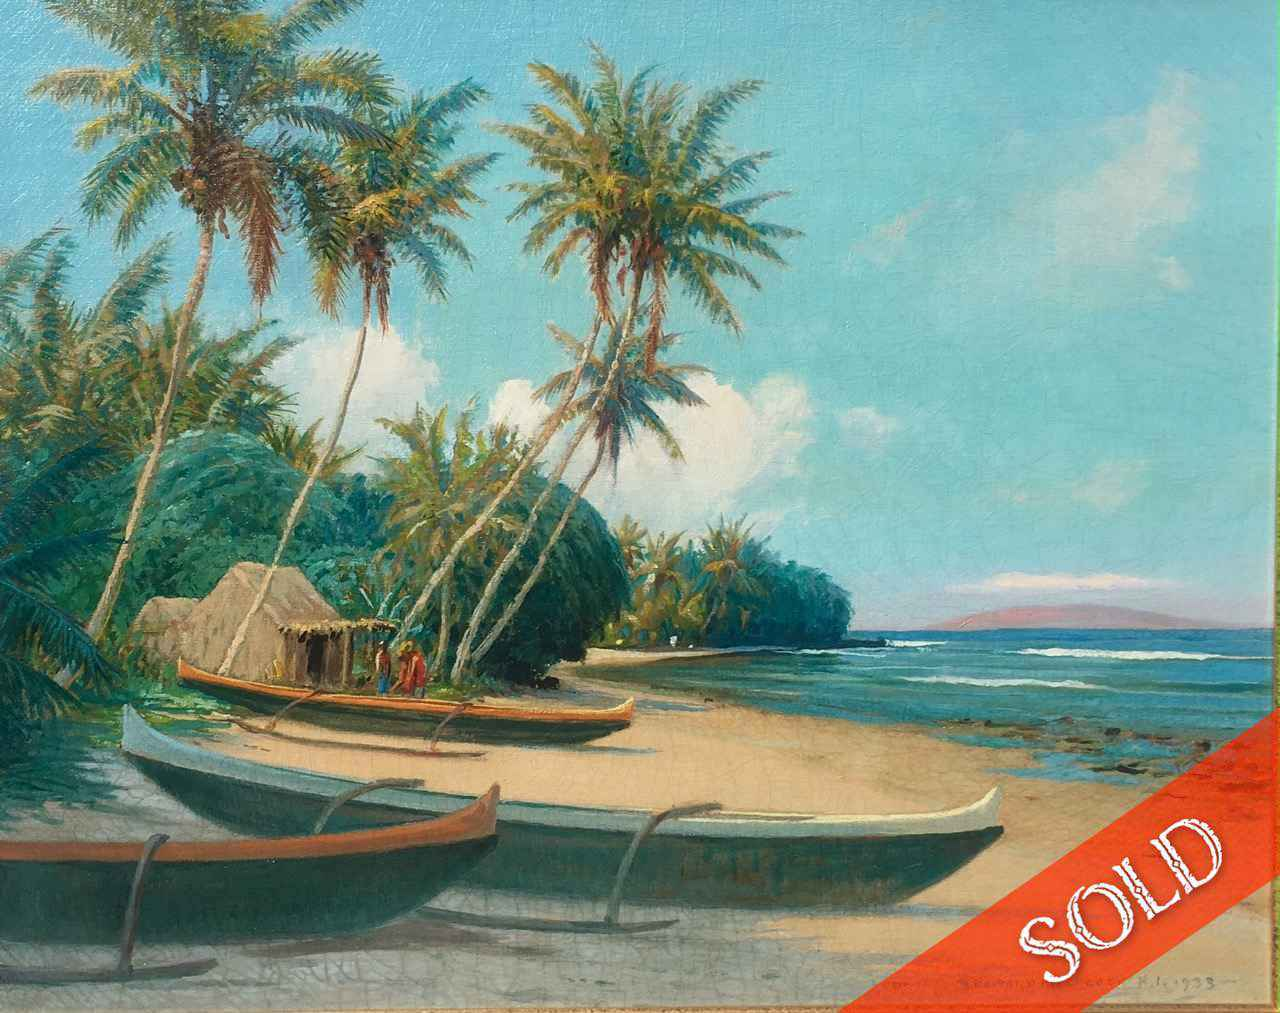 Olowalu Beach, Maui by  David Howard Hitchcock (1861-1943) - Masterpiece Online